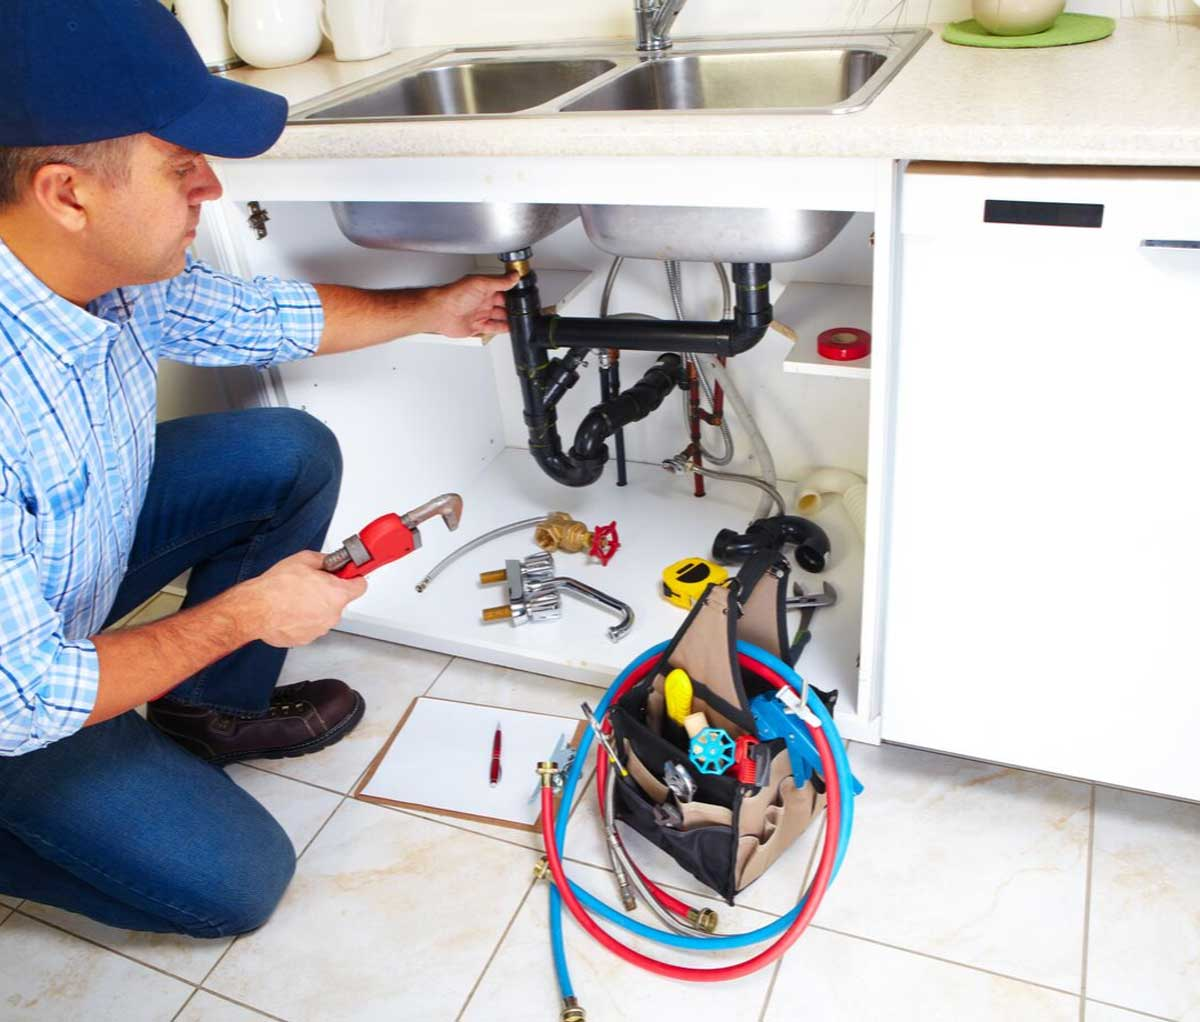 Essential Factors to Consider When Hiring Residential Plumbers